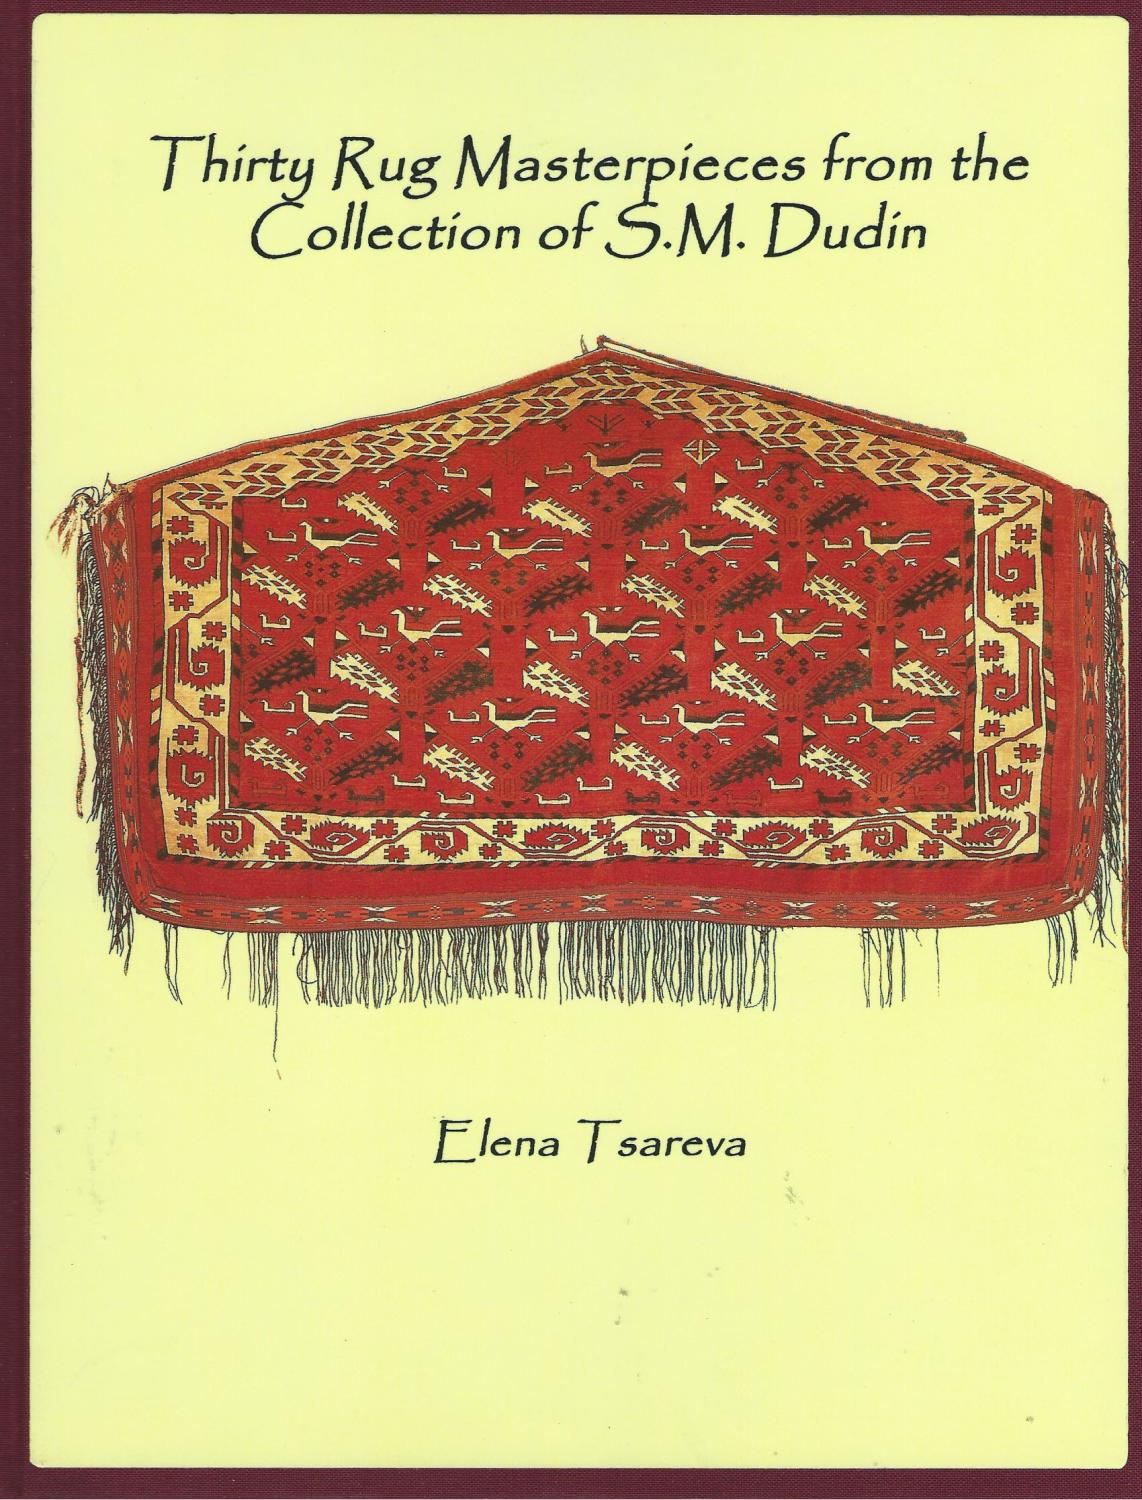 Thirty Rug Masterpieces from the Collection of S.M. Dudin - Tsareva, Elena G.